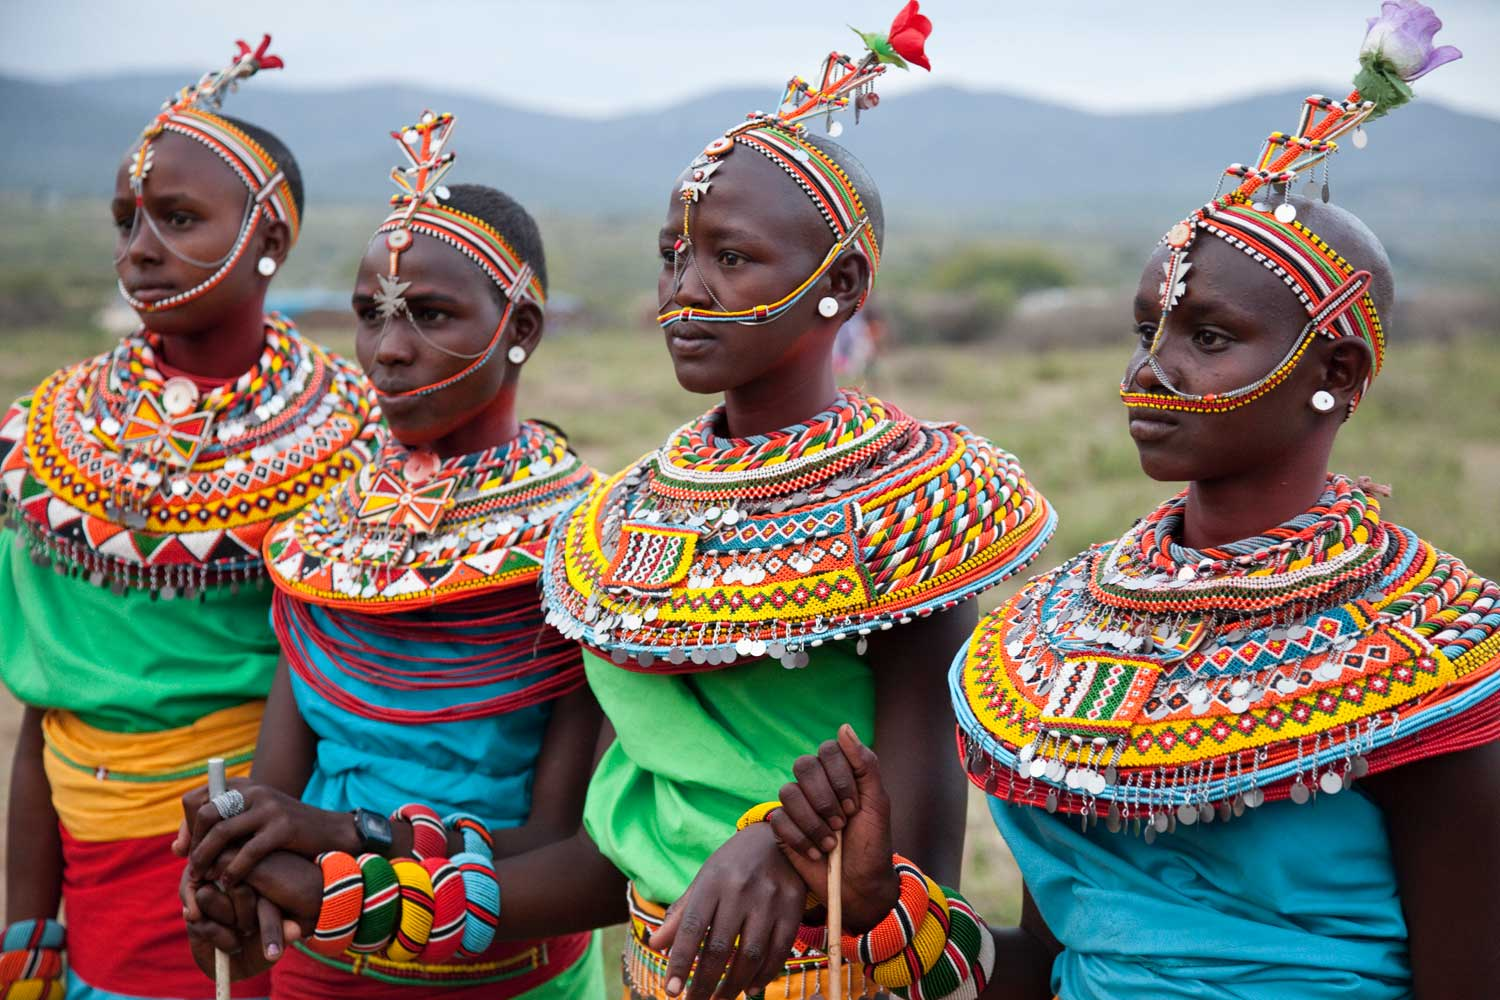 Marcy Mendelson, The Samburu Story | Young Samburu women in their finest decorations at the Lmuget dance show why many refer to the Samburu as 'The Butterfly People'.